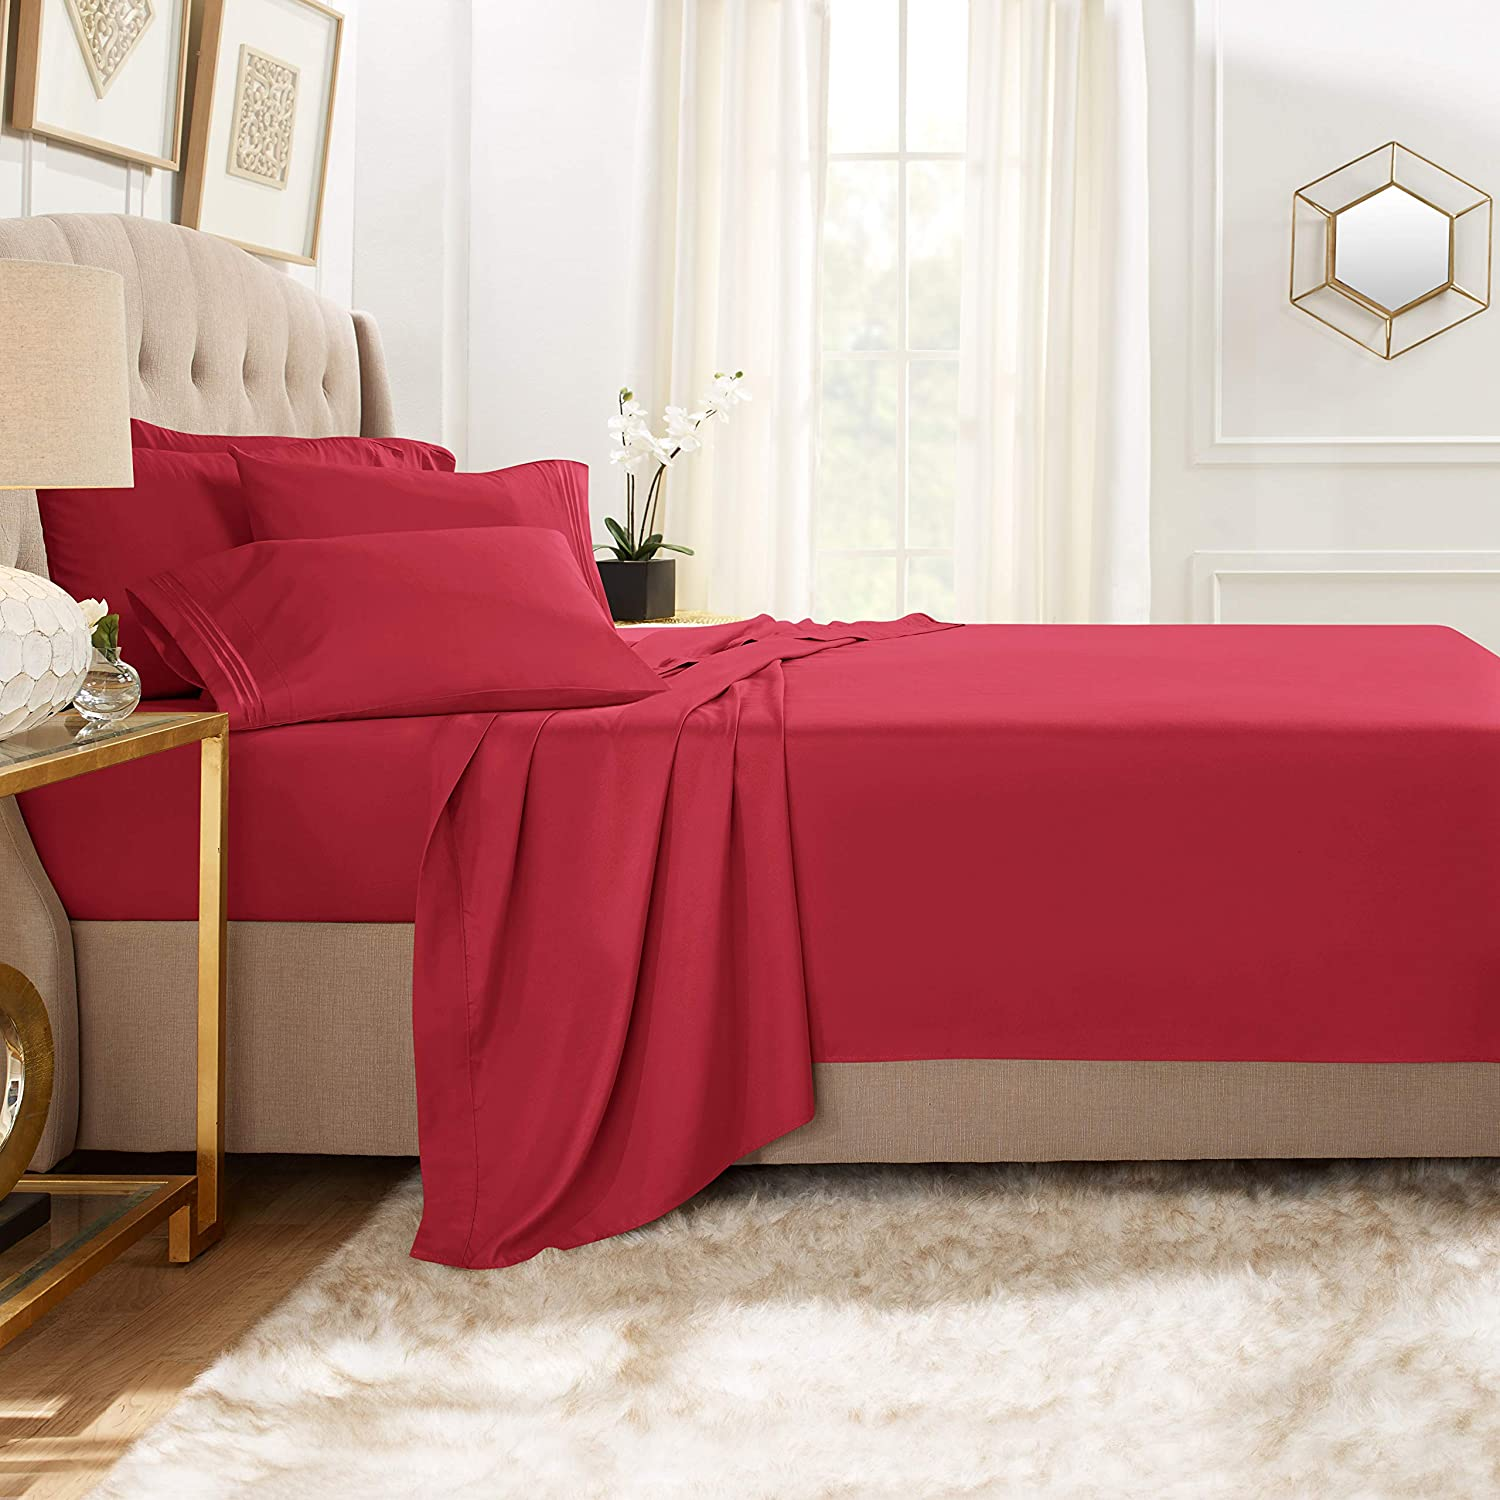 Clara Clark Premier 1800 Collection Bed Sheet Set with Extra Pillowcases Wrinkle, Fade & Stain Resistant, Full, Burgundy Red